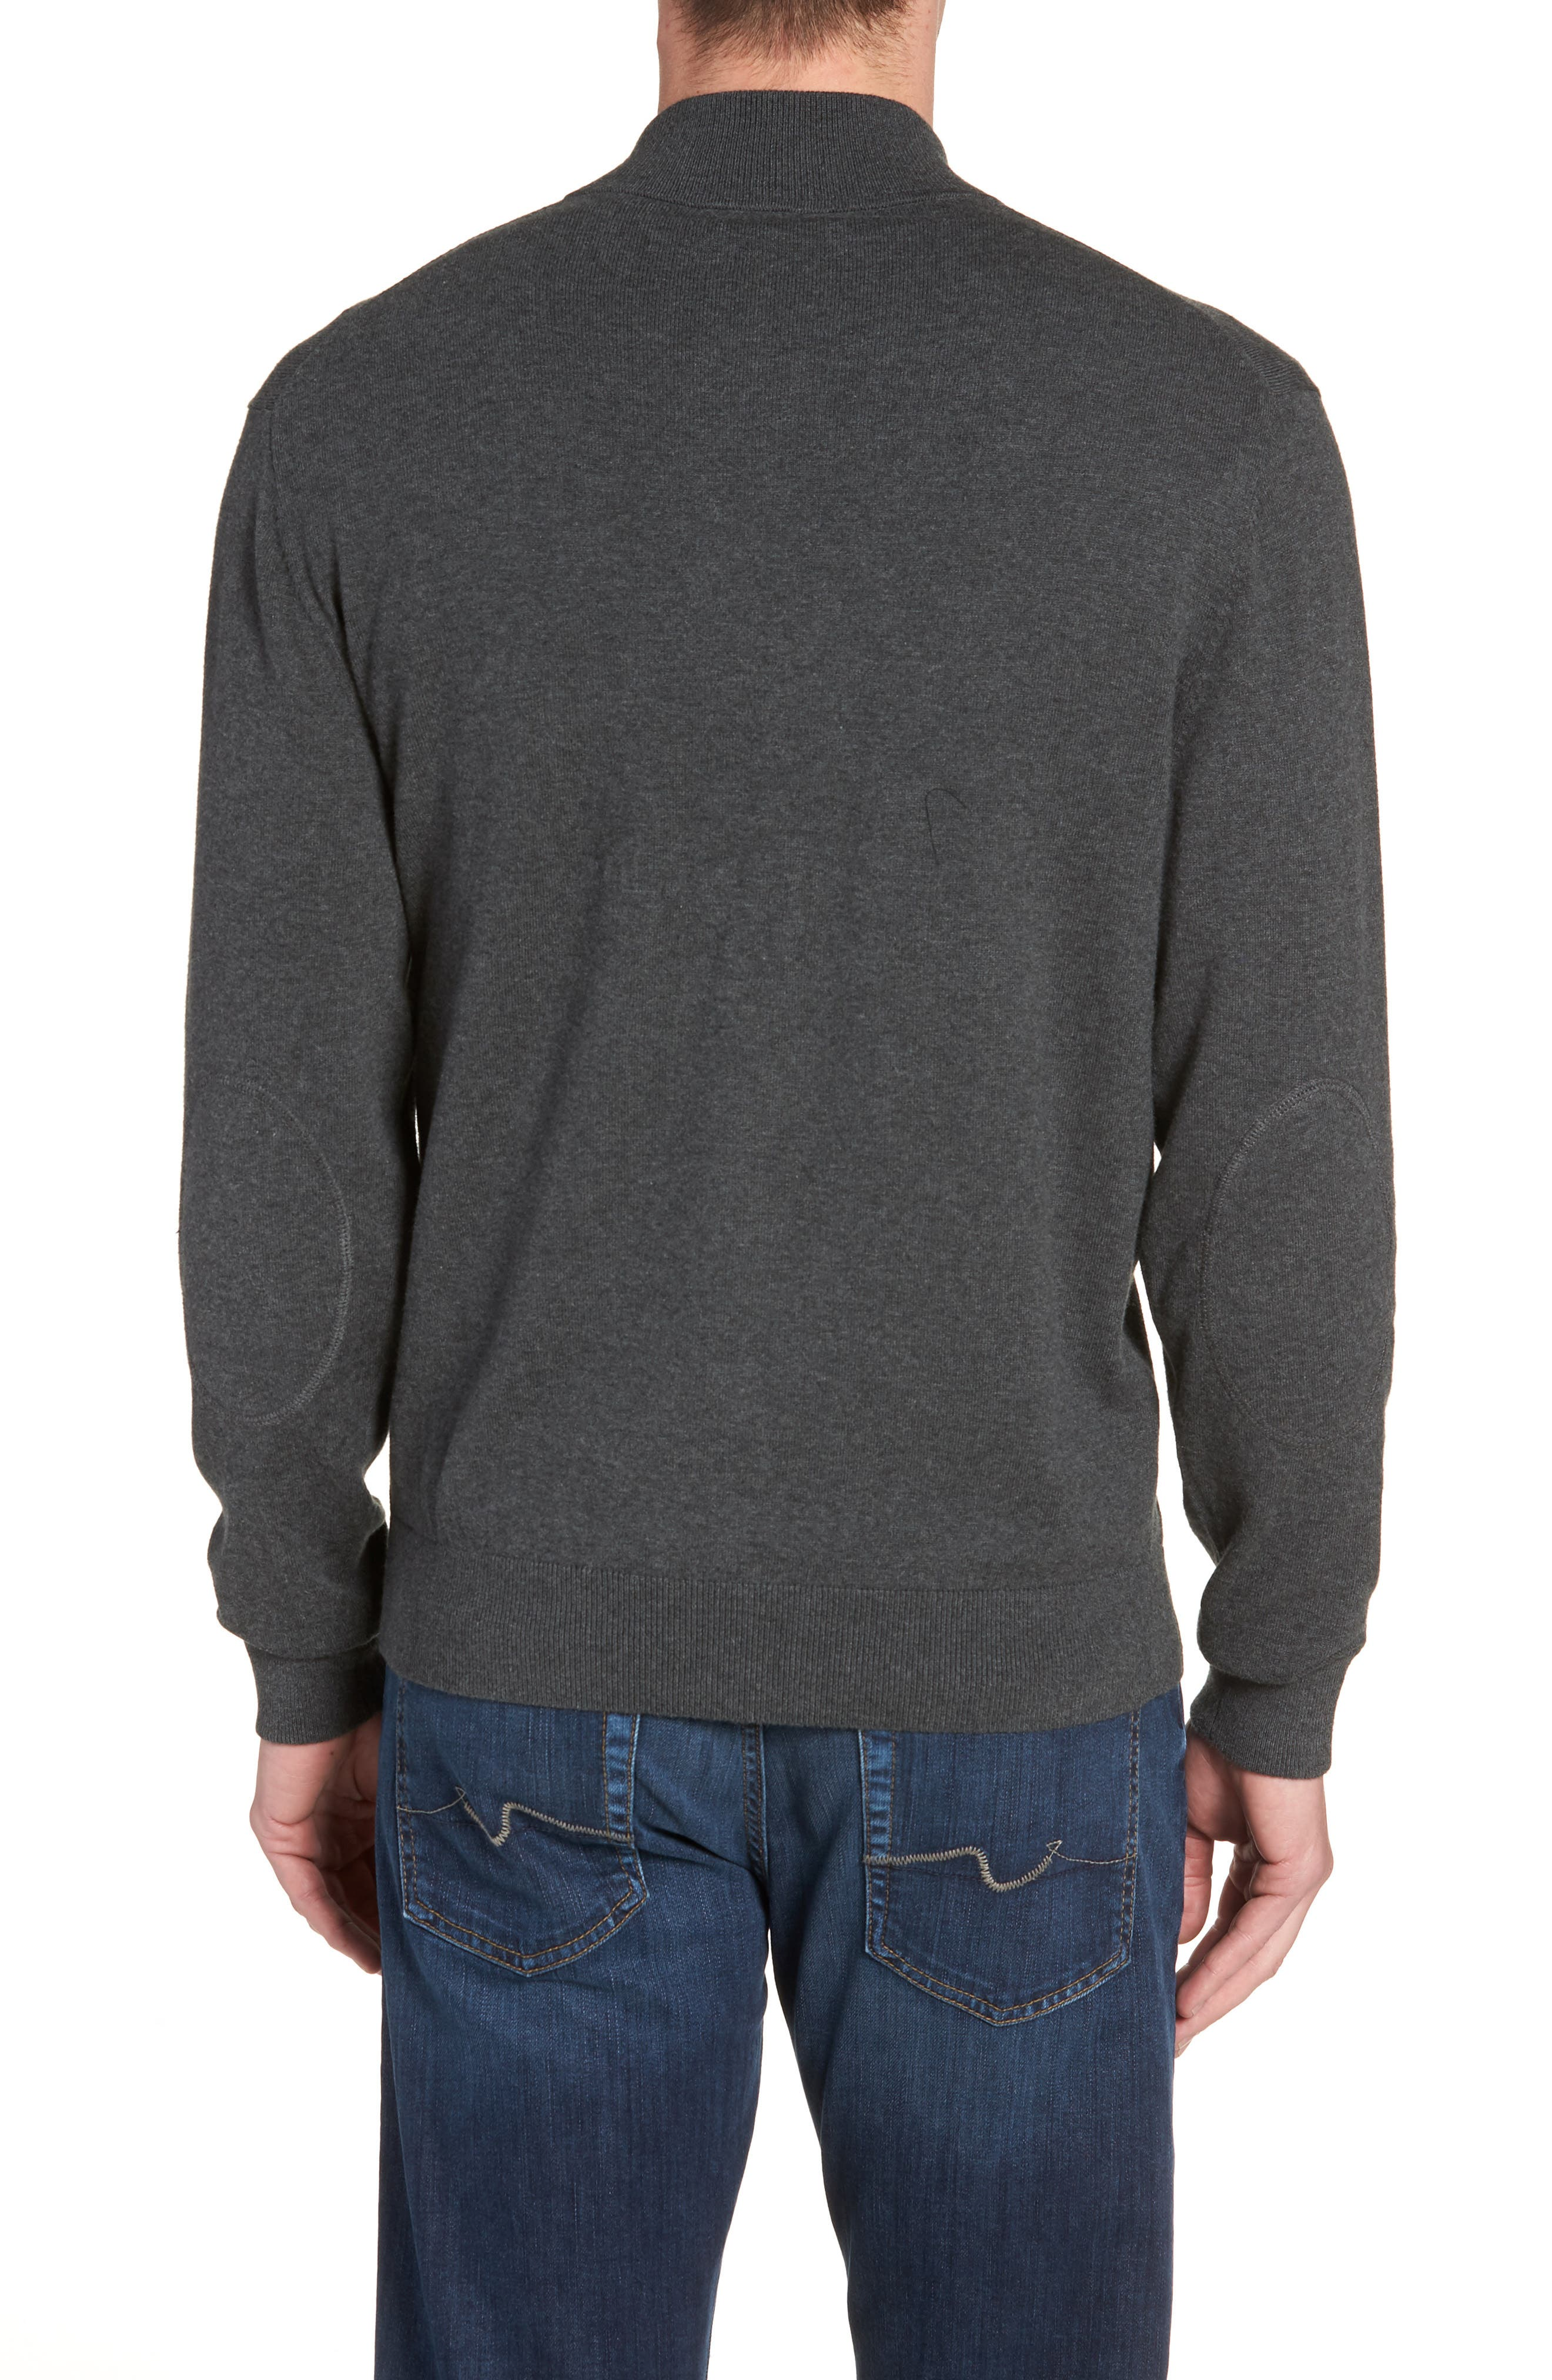 Los Angeles Chargers - Lakemont Regular Fit Quarter Zip Sweater,                             Alternate thumbnail 2, color,                             CHARCOAL HEATHER